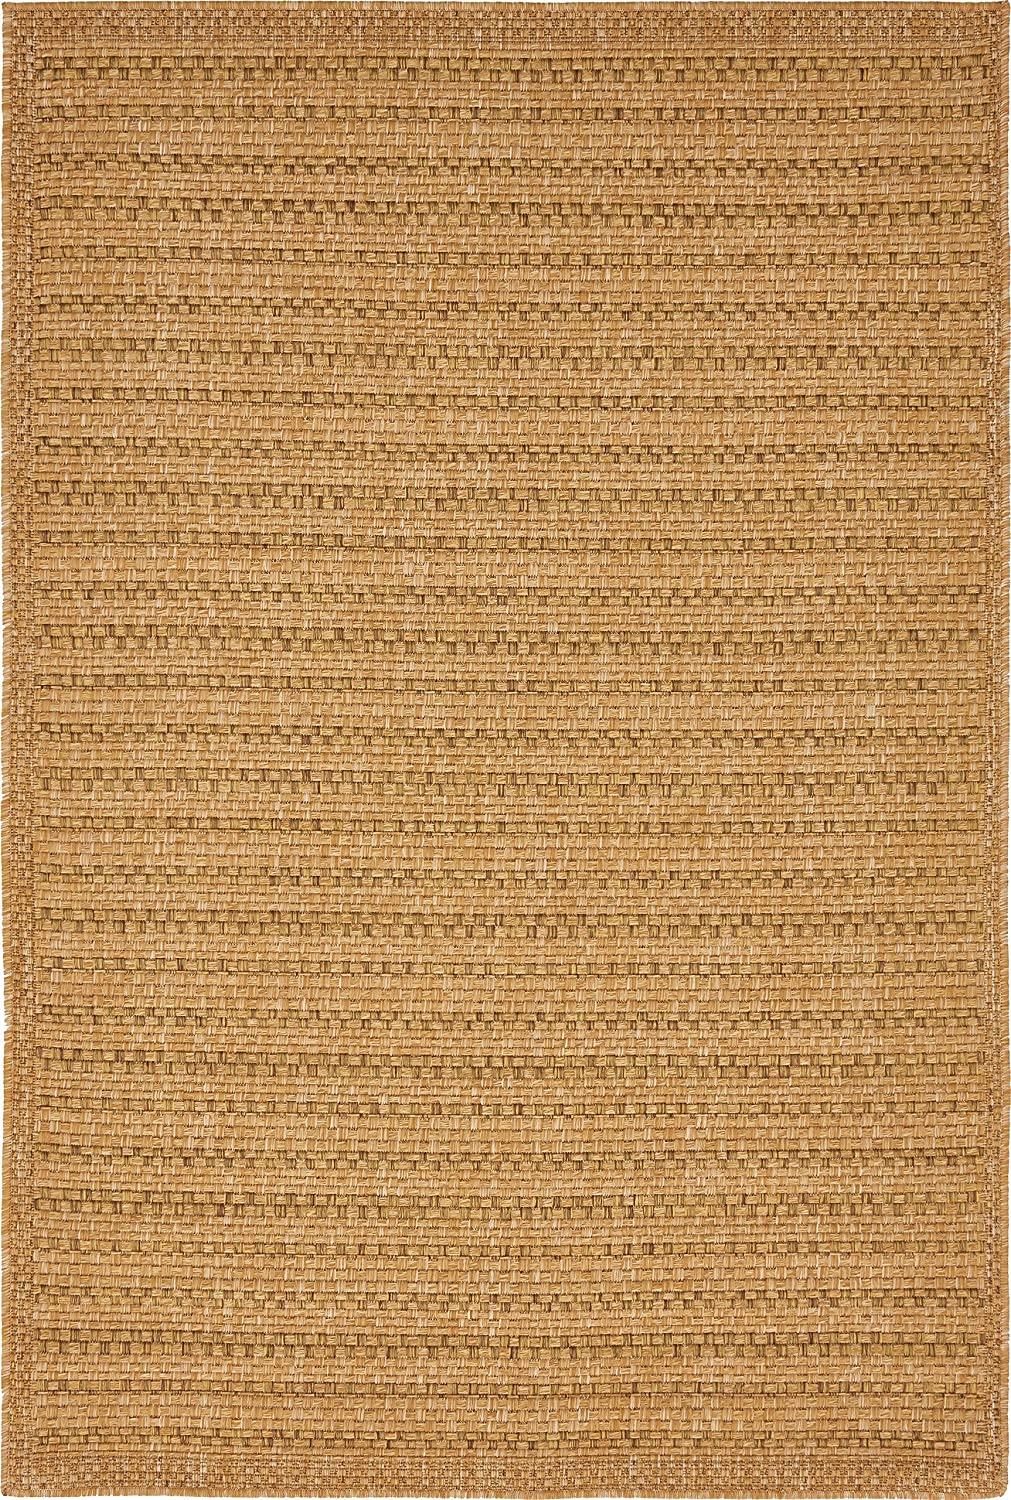 Unique Loom Outdoor Collection Light Brown Area Rug (4' x 6')